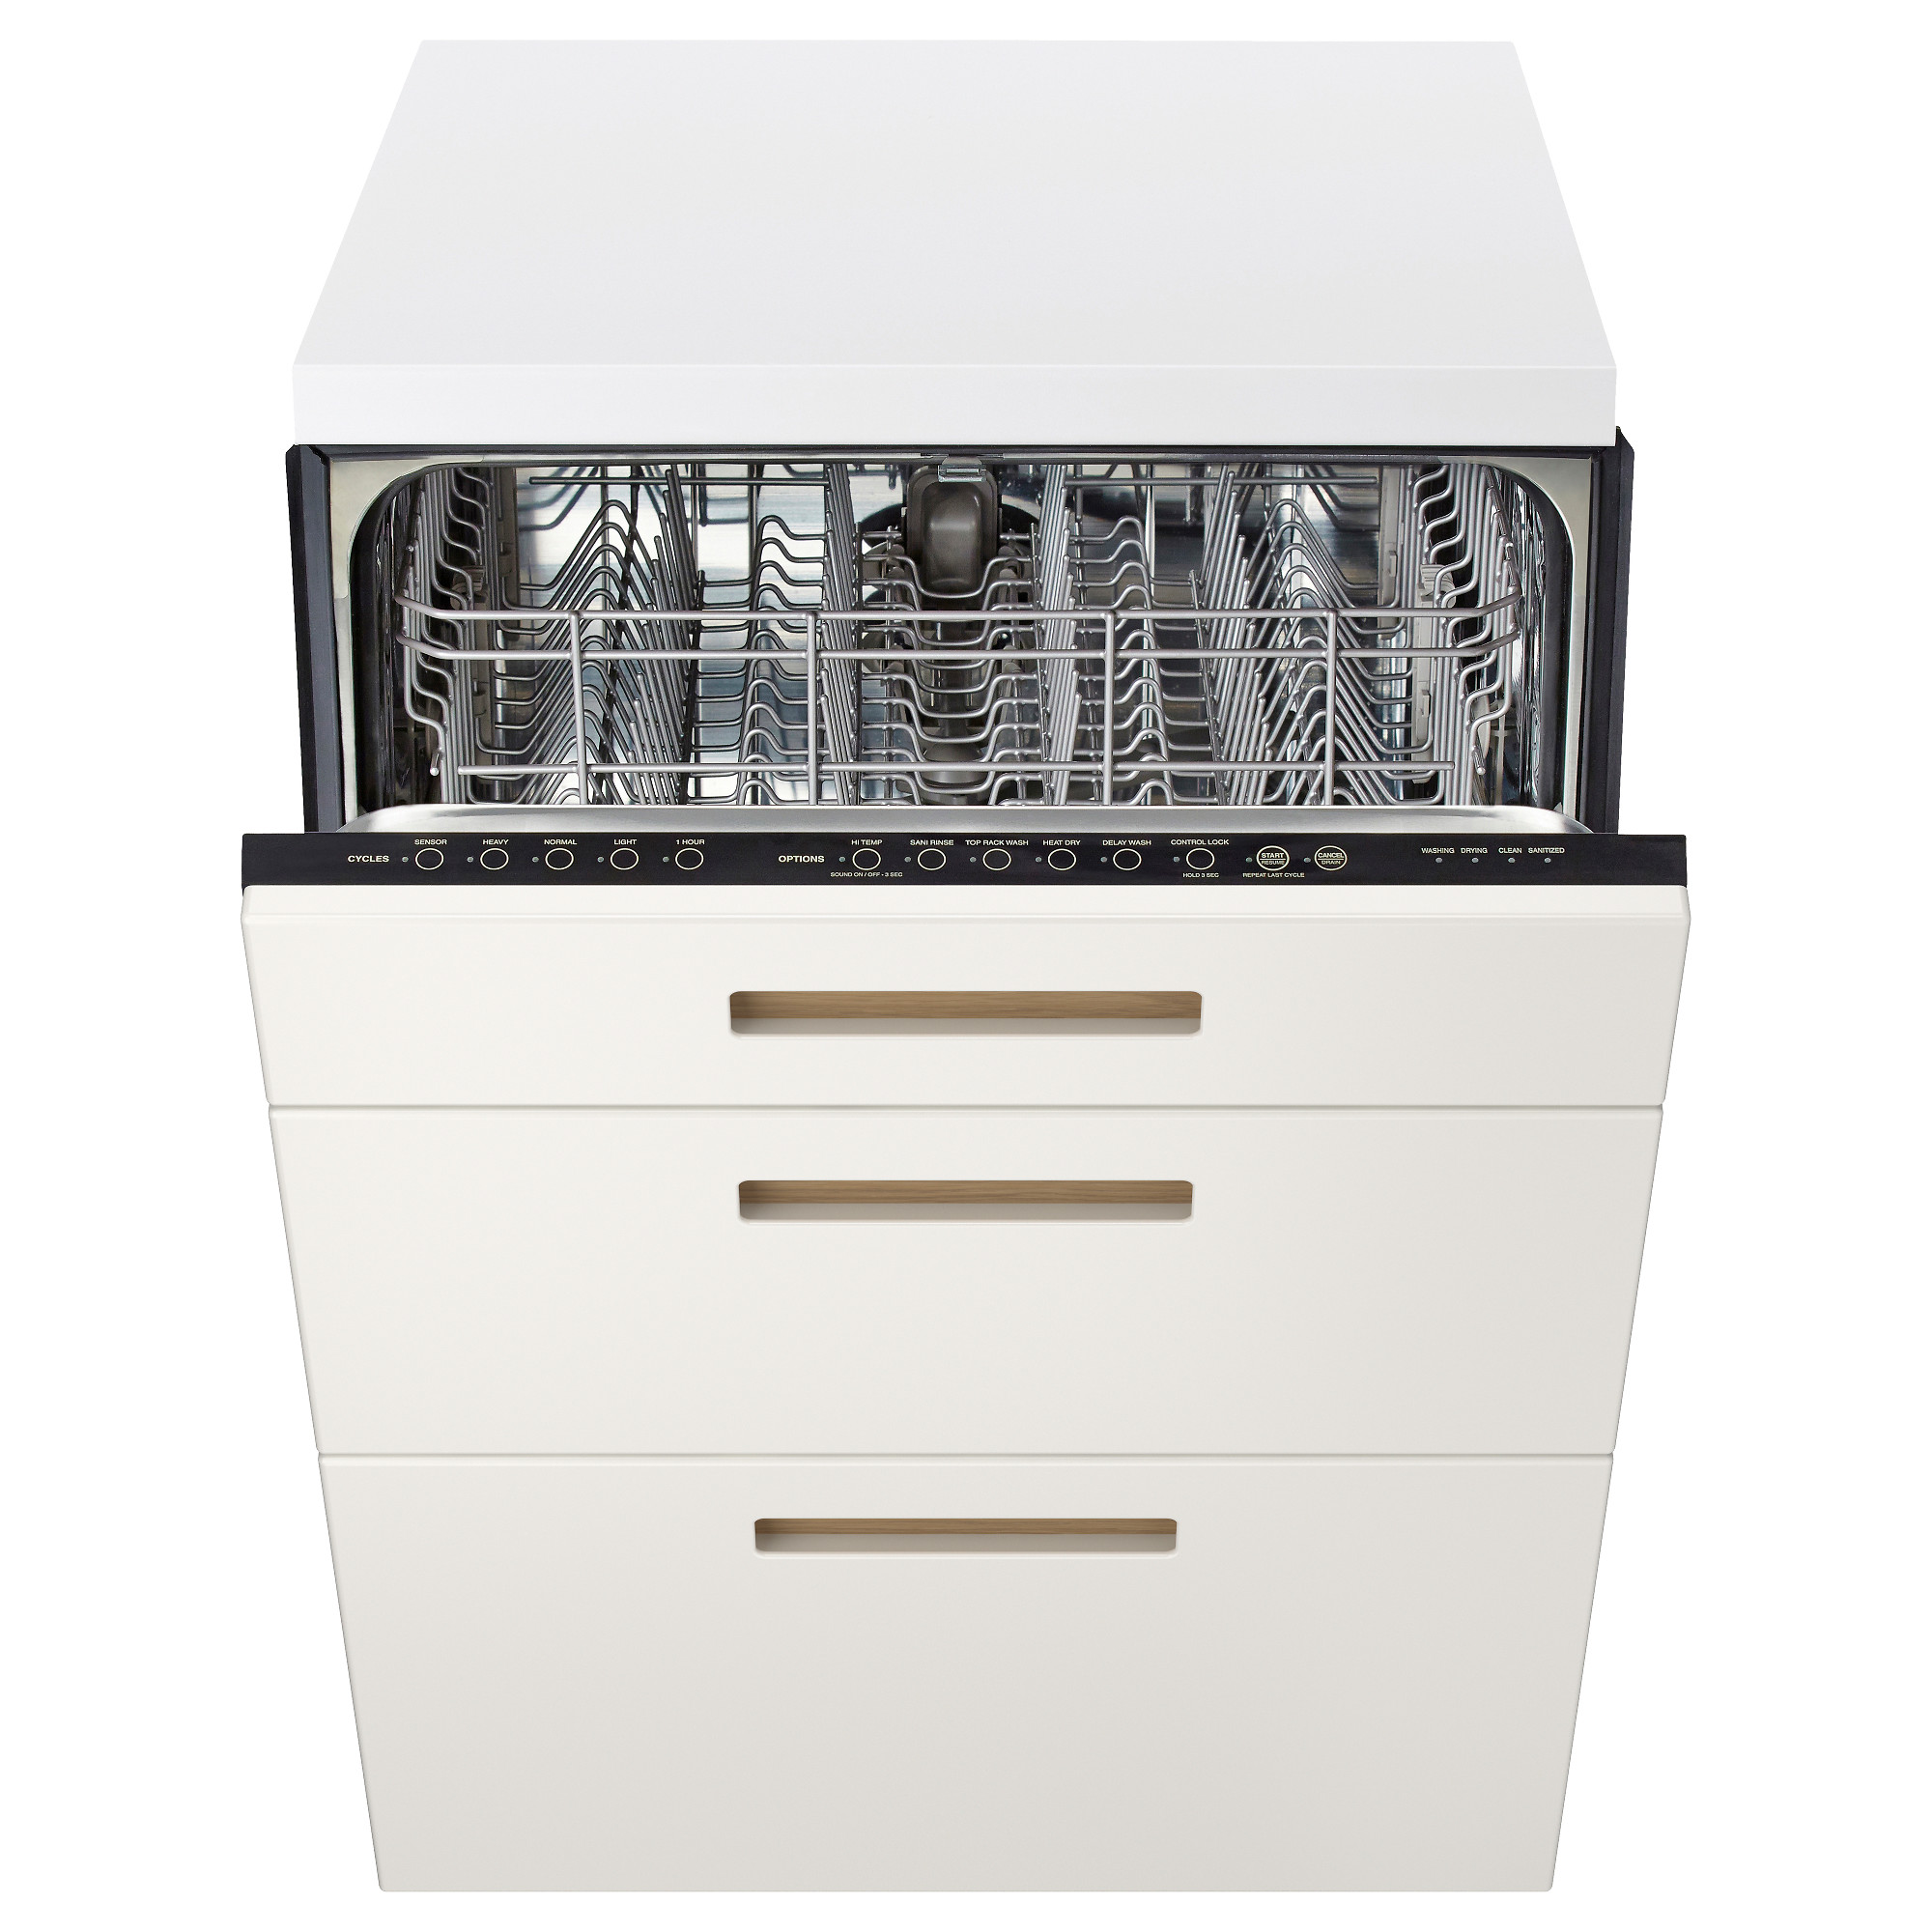 renlig built-in dishwasher with 2 fronts - ringhult white - ikea